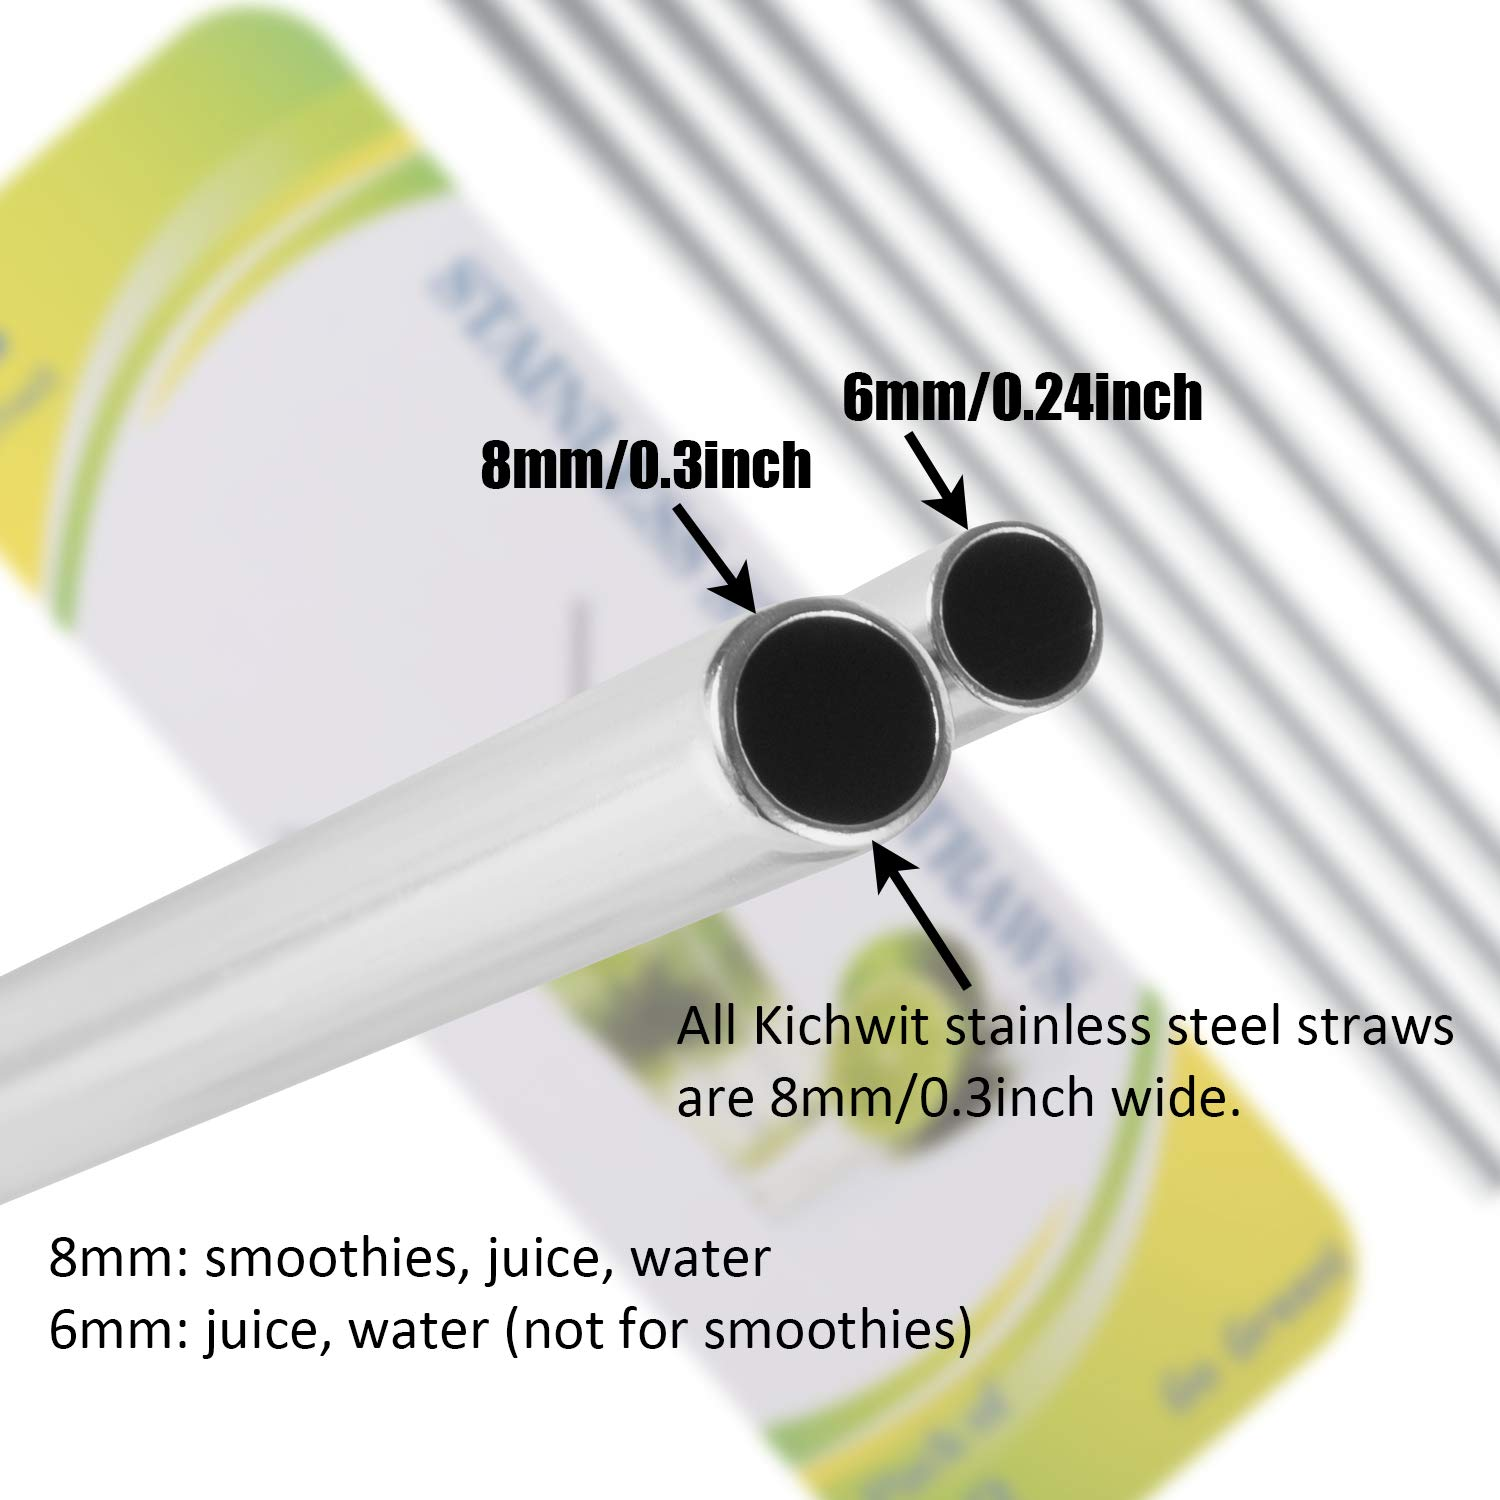 Kichwit Extra Long Stainless Steel Straws Set of 8, Reusable Wide Straws for Smoothies, 10.5'' Long, 5/16'' Wide, Metal Drinking Straws, 2 Cleaning Brushes Included by Kichwit